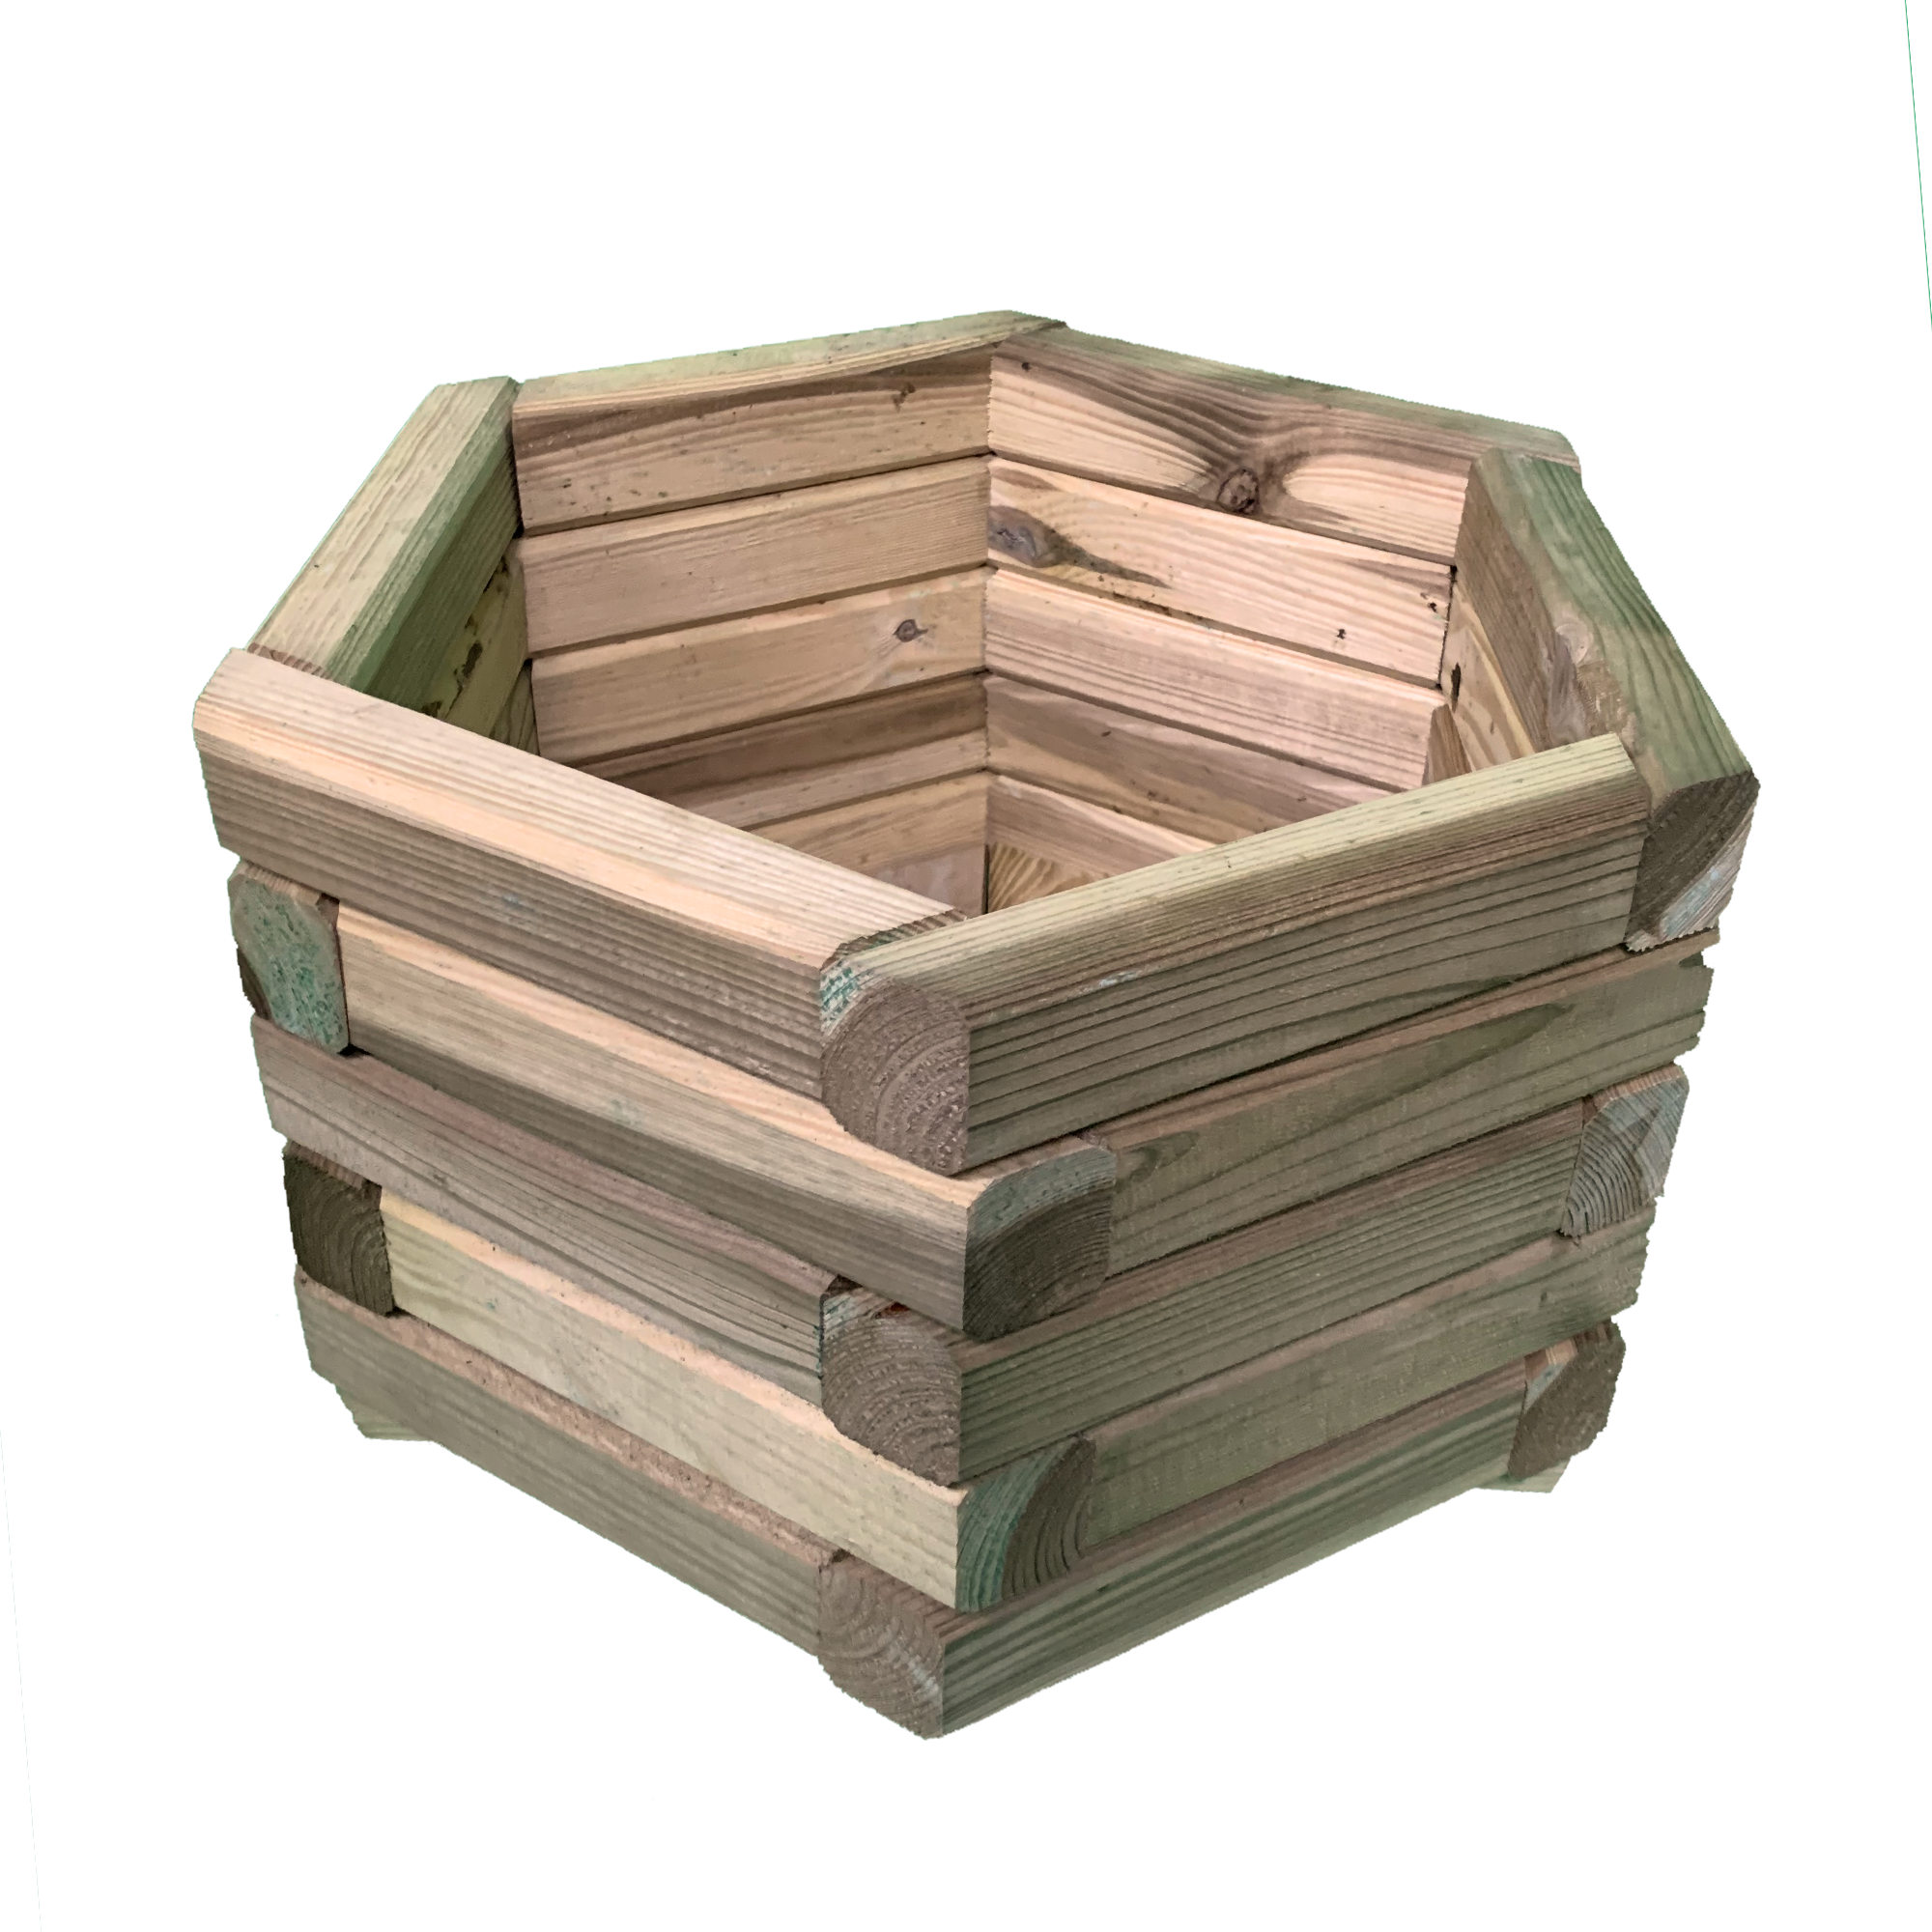 EXTRA LARGE PLUS Simply Wood Tanalised Pressure Treated Trough Planter